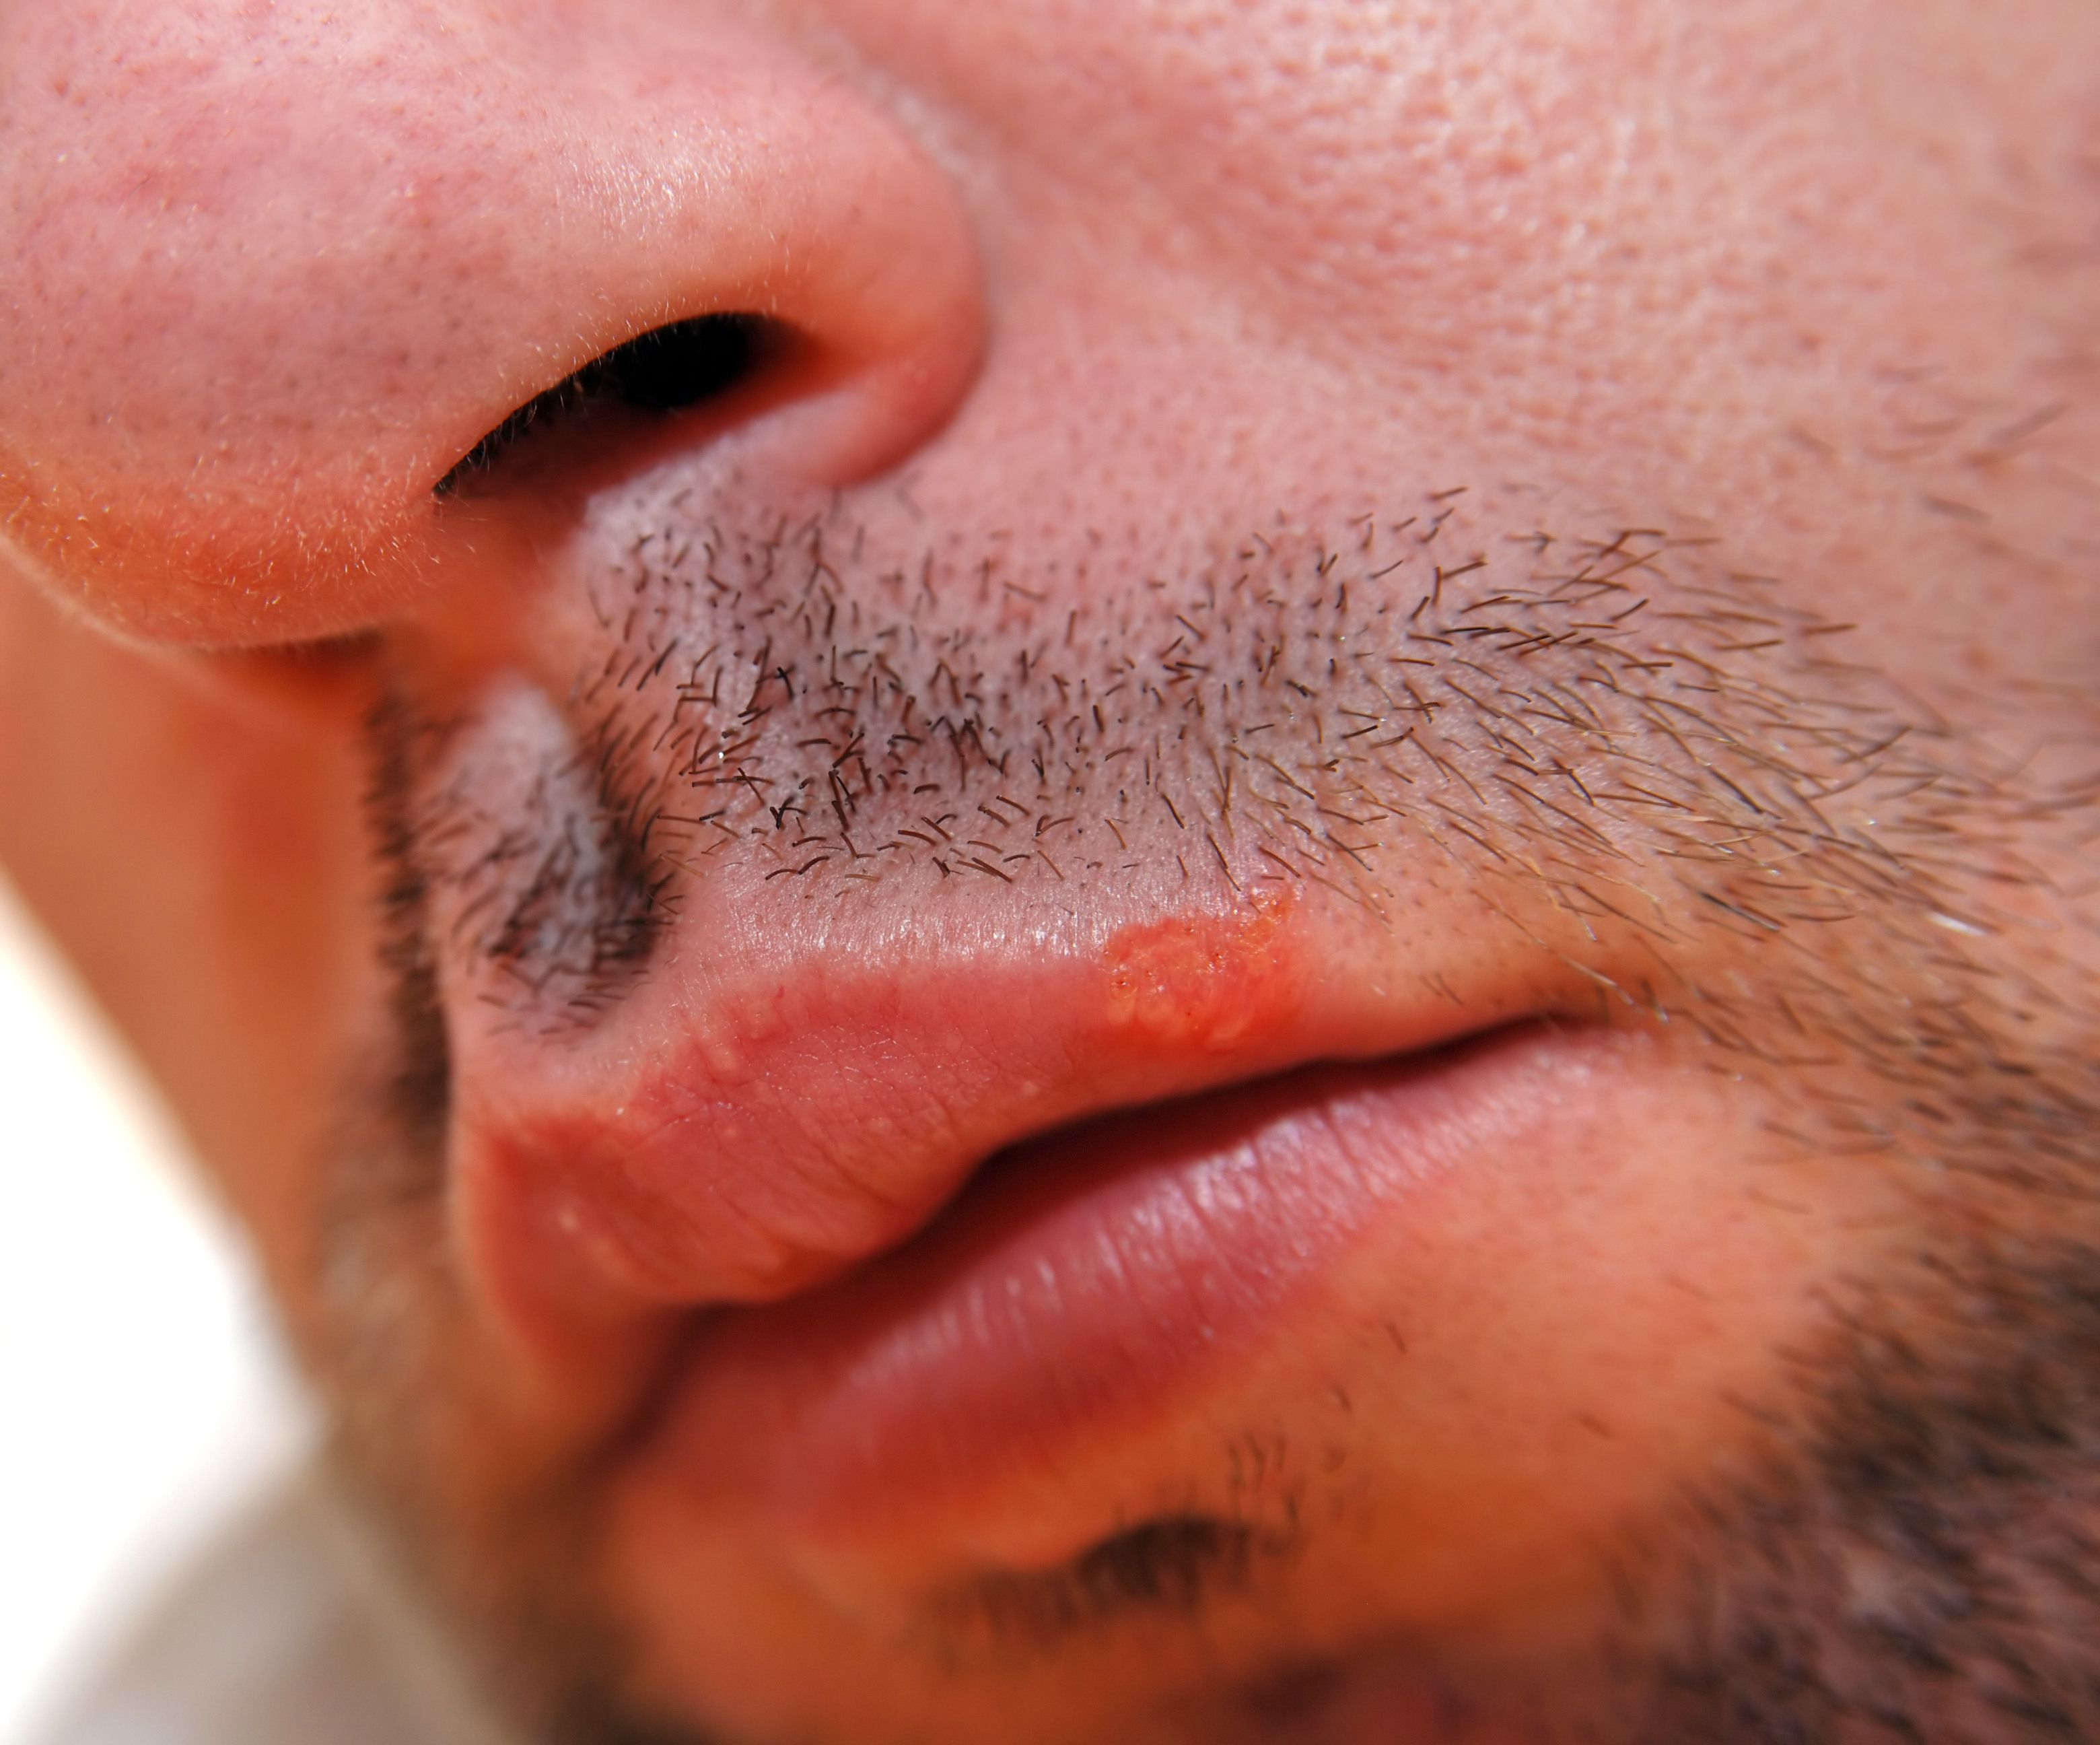 herpes simplex virus What causes cold sores there are two types of herpes simplex virus that can cause cold sores: hsv type 1 and hsv type 2 cold sores are usually caused by hsv type 1.